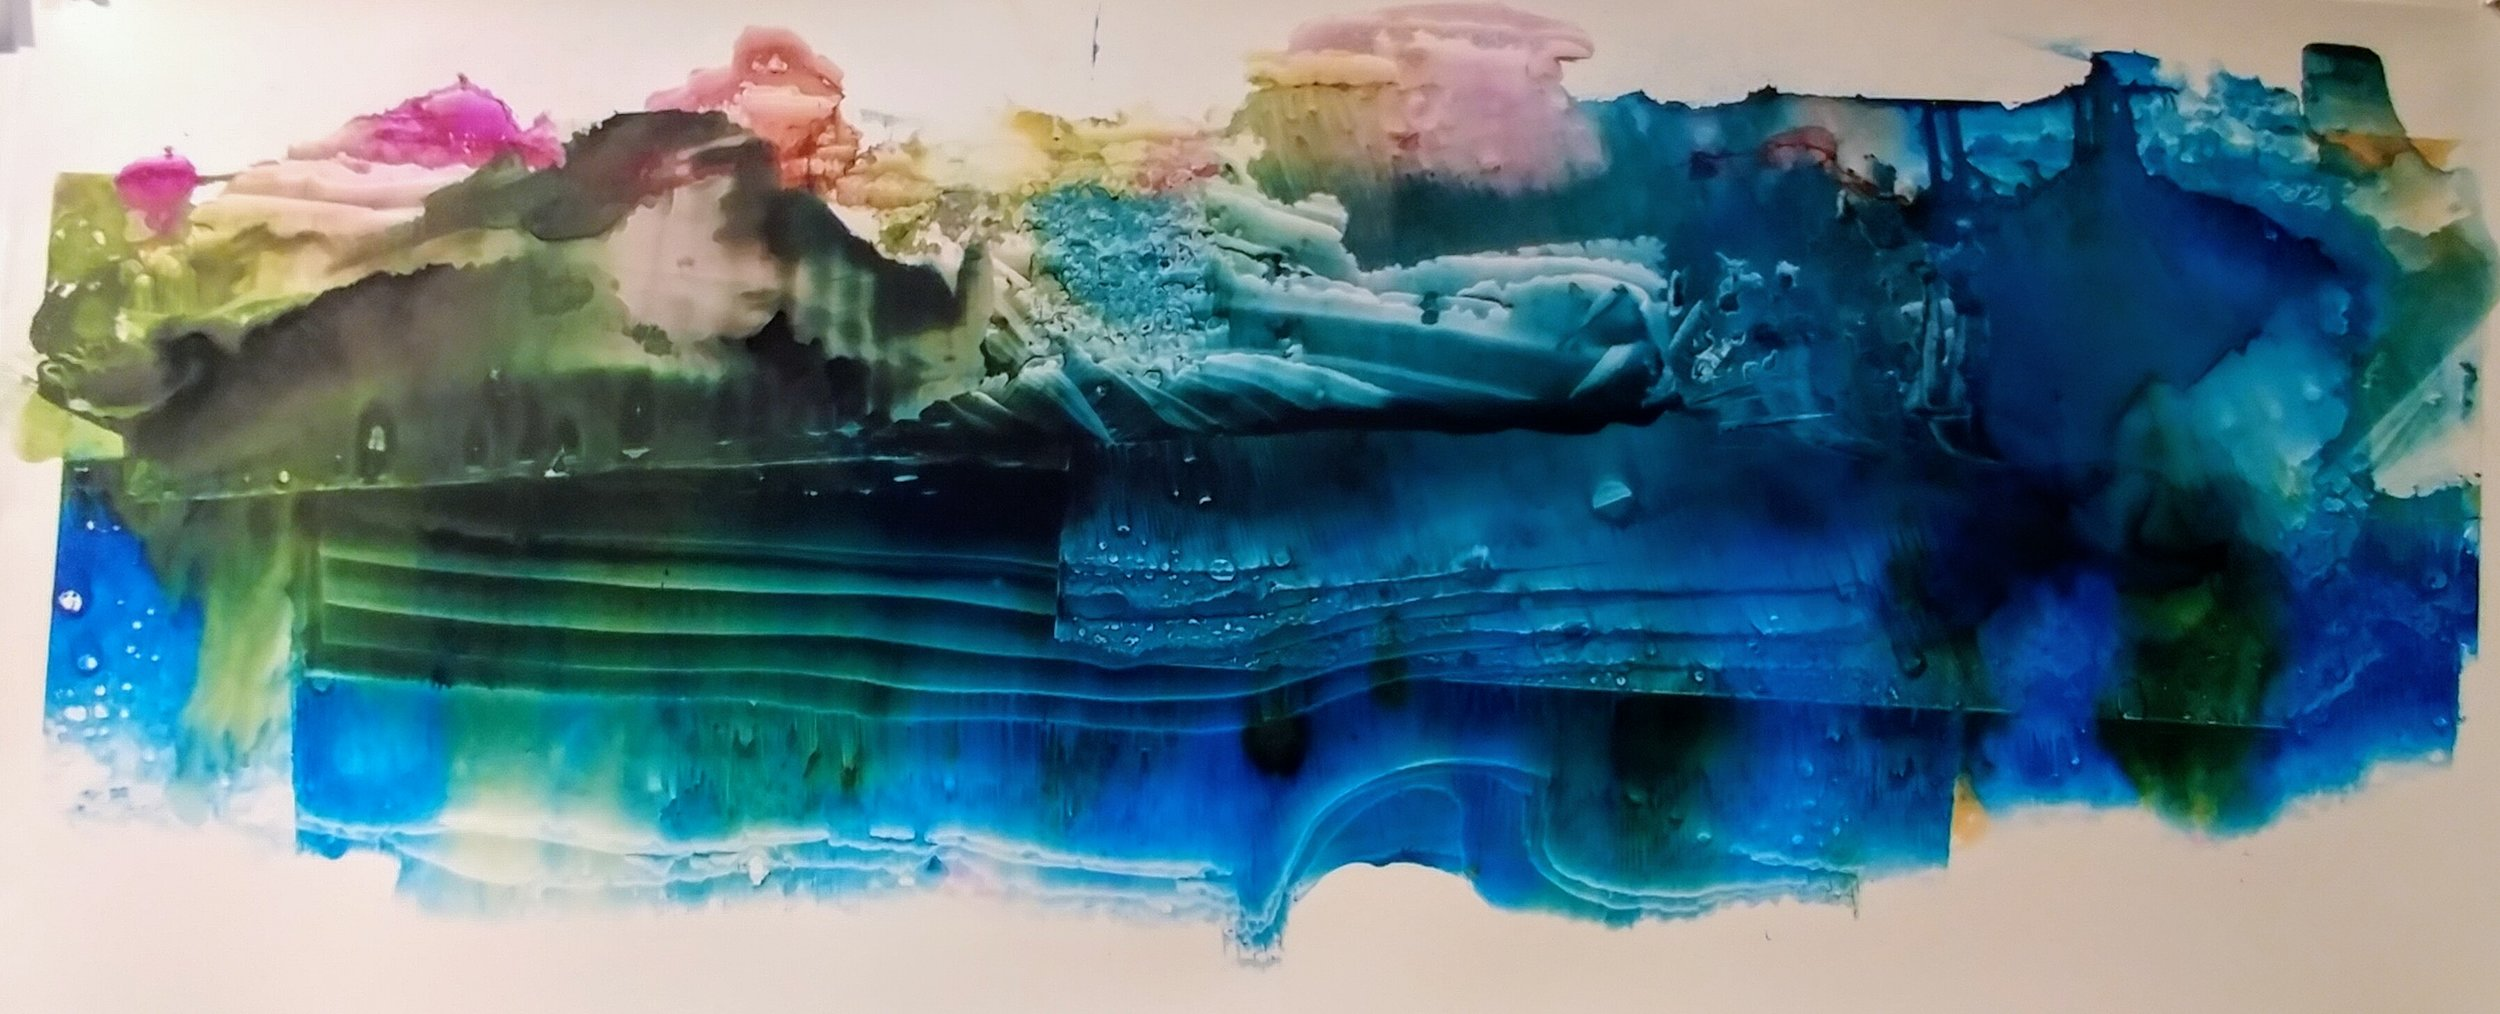 """Amie Oliver  ,Arcadia Lost Series: Summer , 2018  ink wash on polypropylene paper,23"""" x 58""""  Image courtesy of the artist and Reynolds Gallery"""